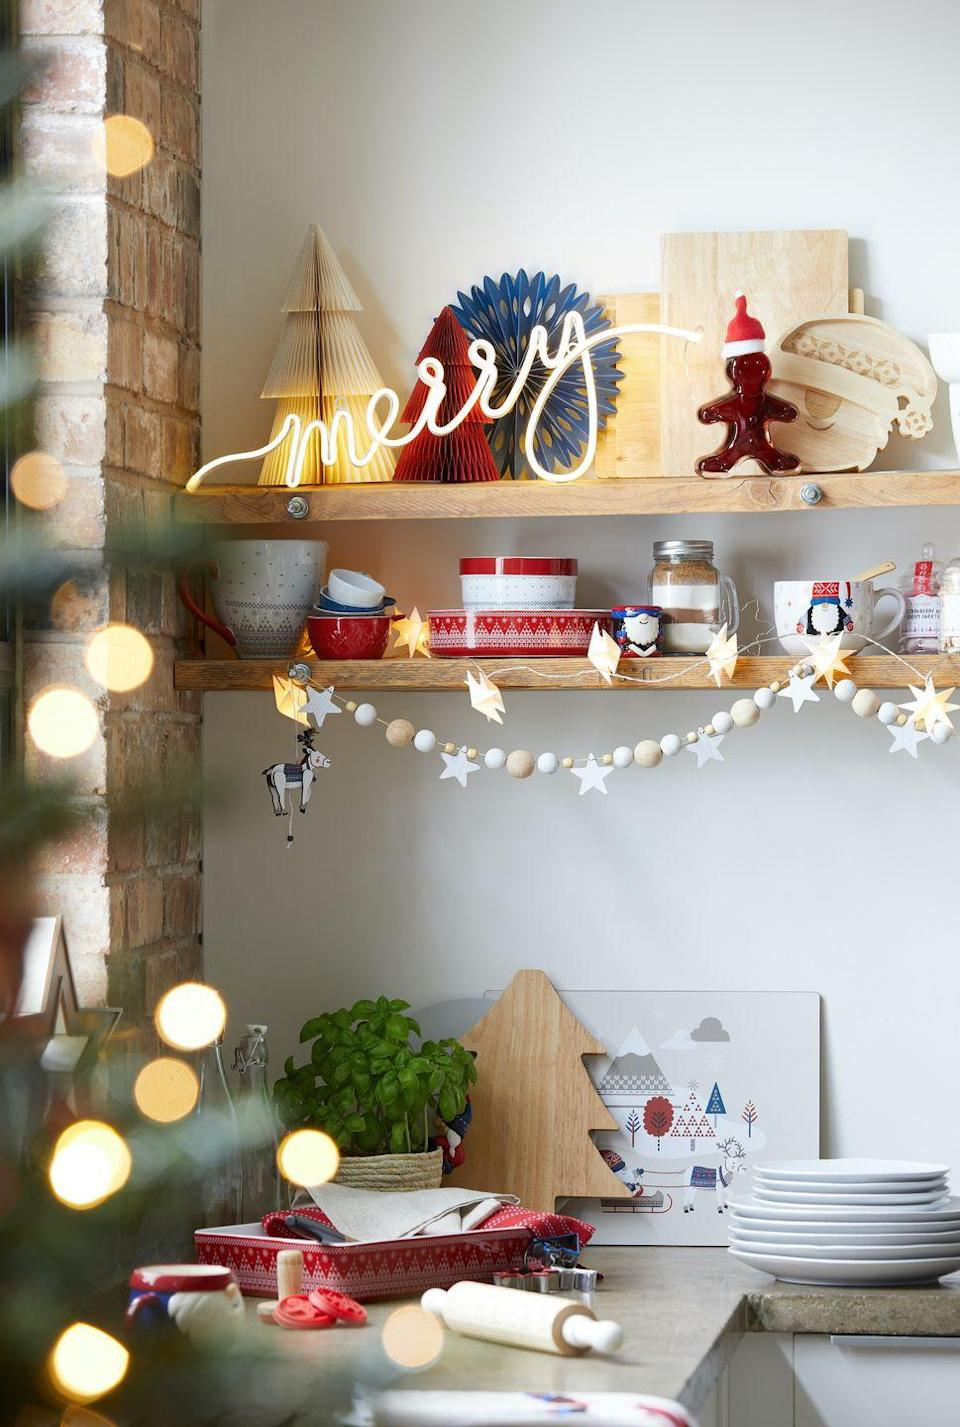 """<p>From seasonal storage to plates adorned with fun figurines, cheer up the Christmas cook with Dunelm's festive kitchenware. As the heart of the home, your kitchen also deserves some love this festive season...</p><p><strong>Follow House Beautiful on <a href=""""https://www.instagram.com/housebeautifuluk/"""" rel=""""nofollow noopener"""" target=""""_blank"""" data-ylk=""""slk:Instagram"""" class=""""link rapid-noclick-resp"""">Instagram</a>.</strong></p>"""